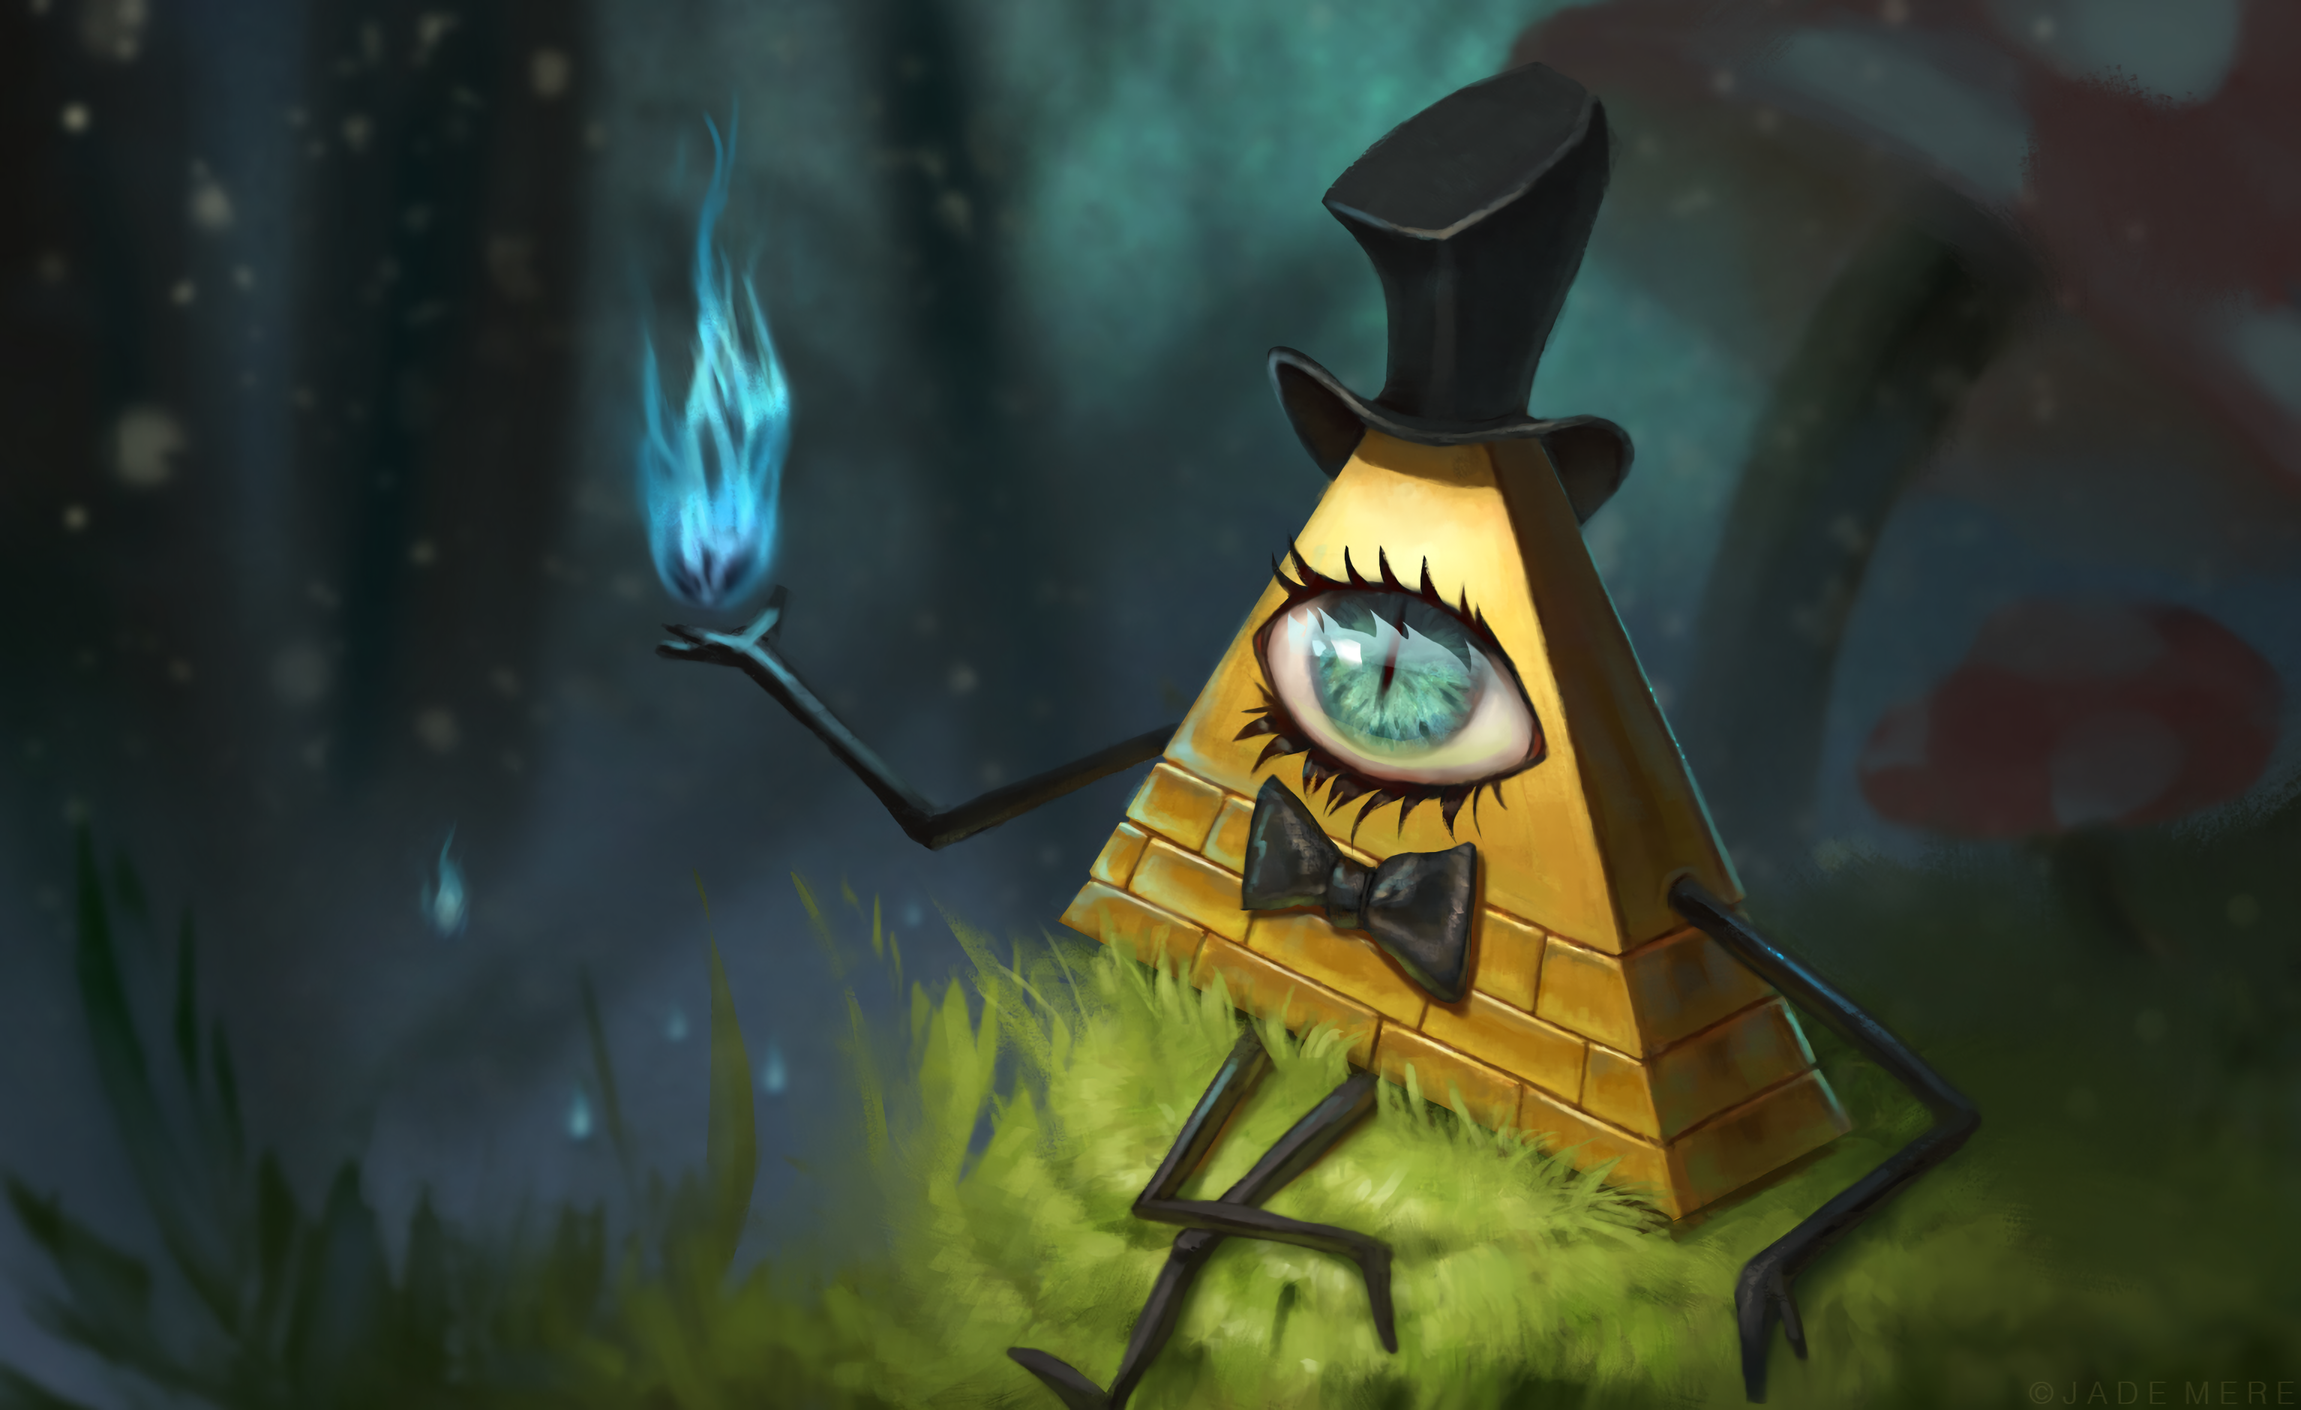 Gravity Falls Wallpapers, Pictures, Images